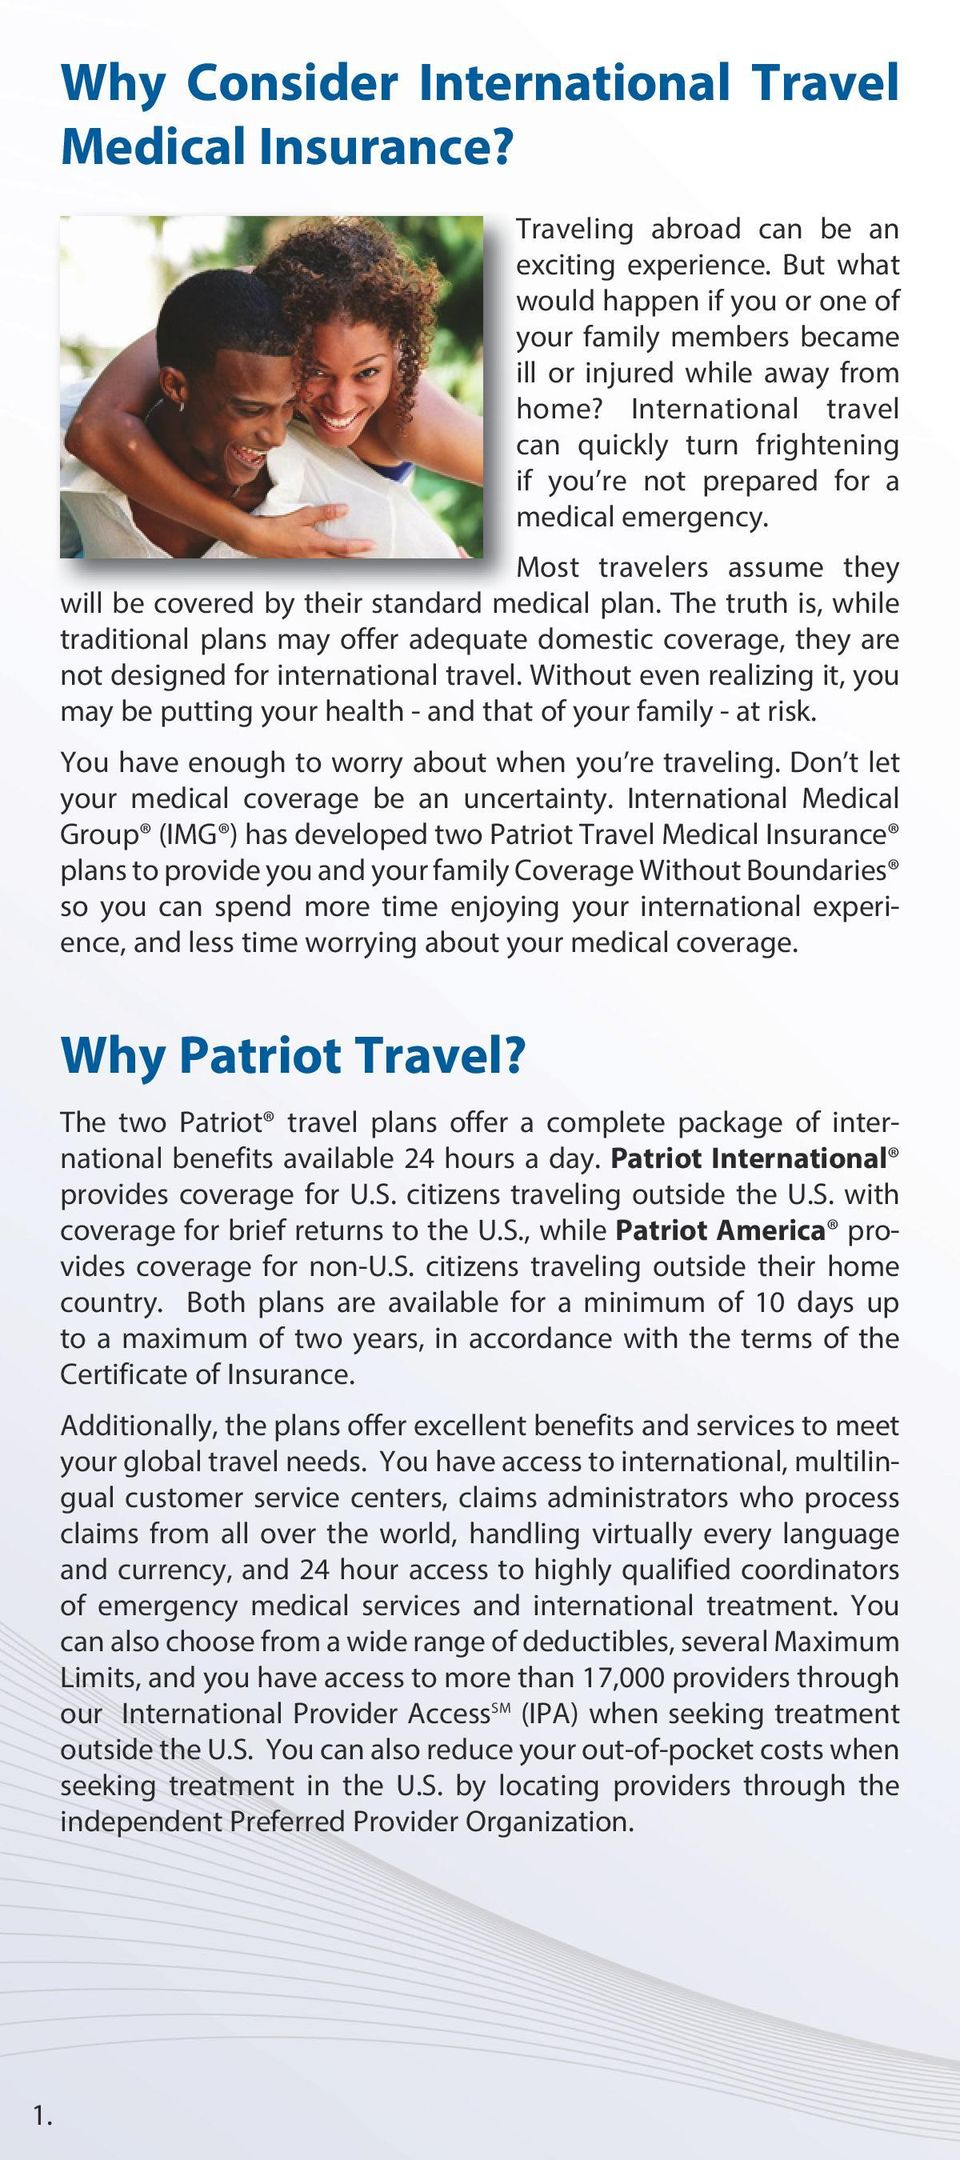 Most travelers assume they will be covered by their standard medical plan. The truth is, while traditional plans may offer adequate domestic coverage, they are not designed for international travel.